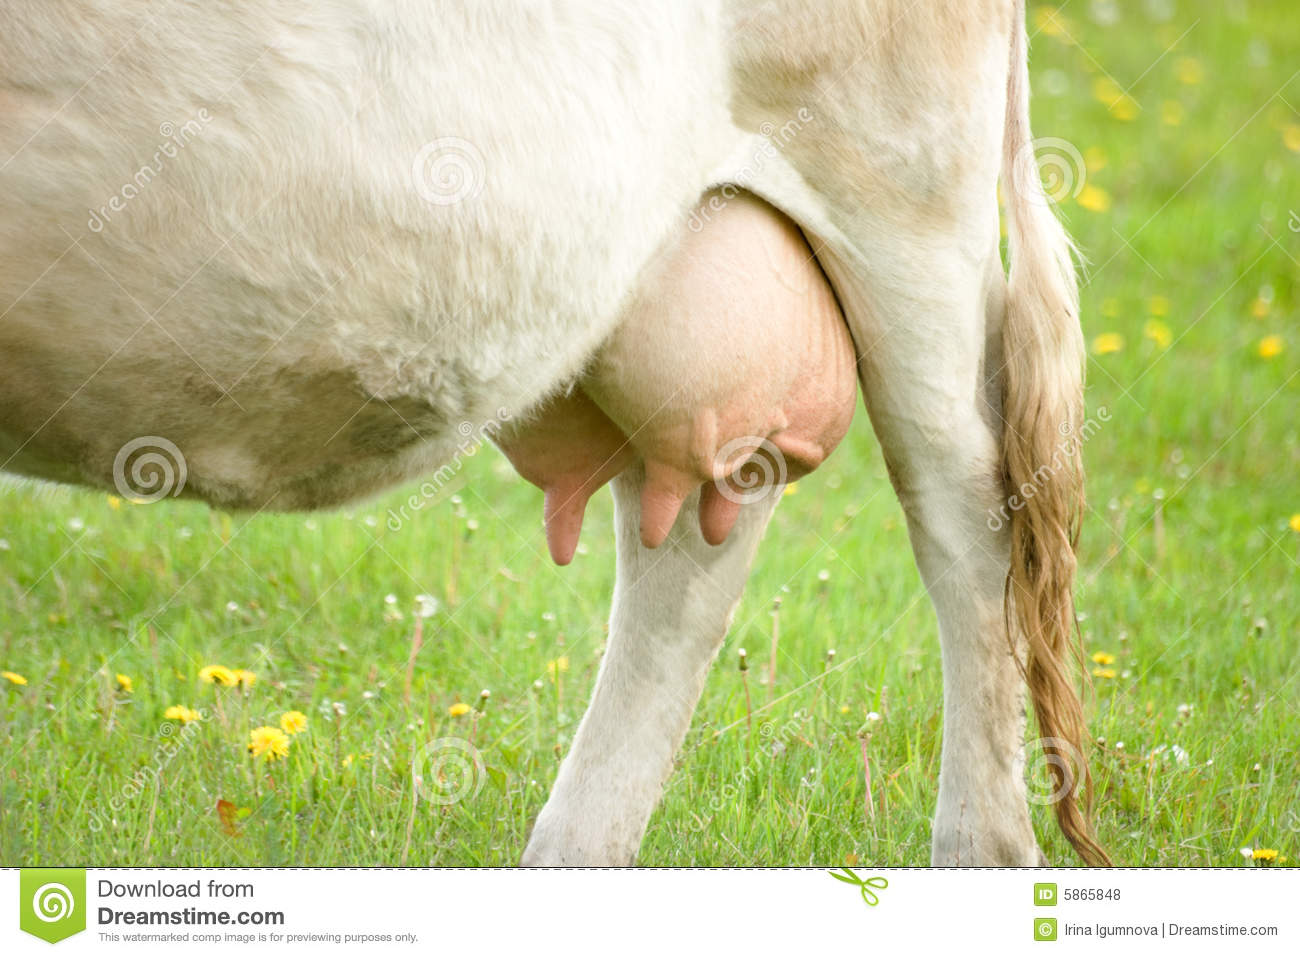 Cow Udder Royalty Free Stock Photos - Image: 5865848